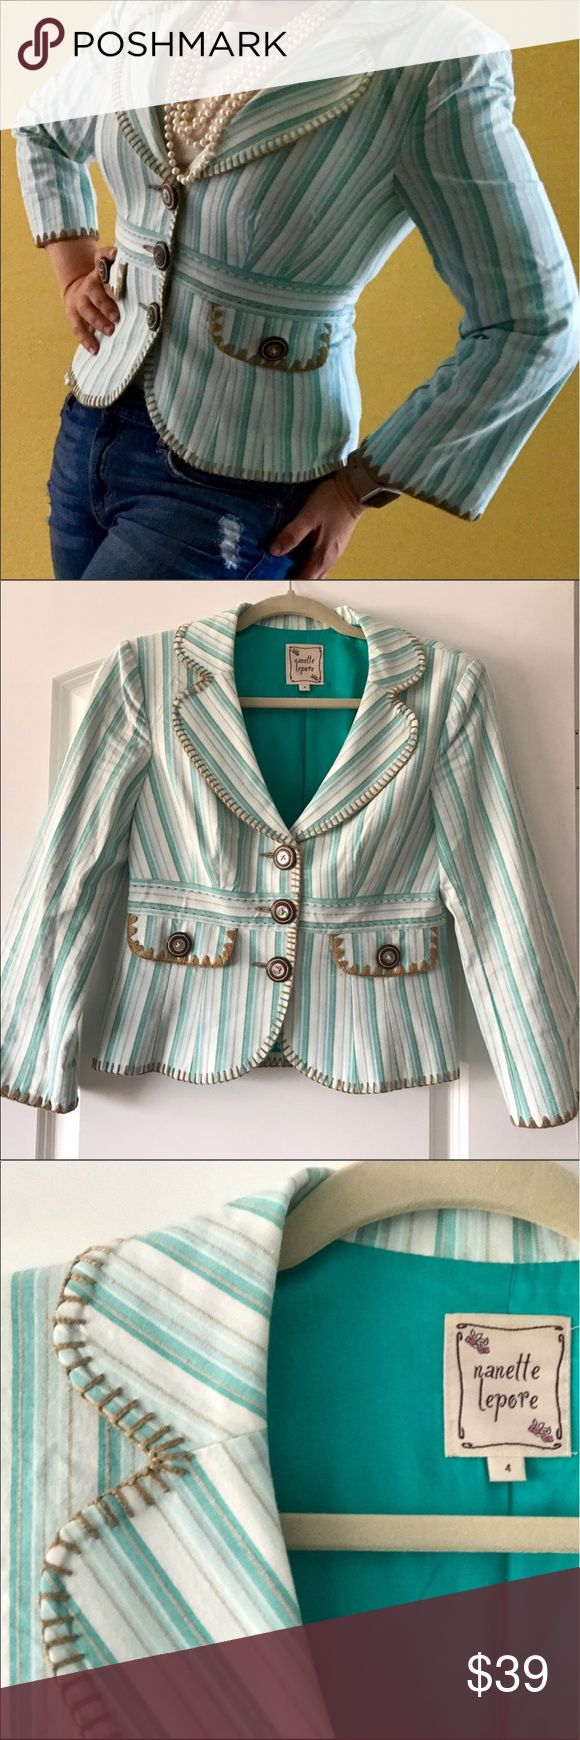 Nanette Lepore summer jacket Nanette Lepore cotton summer jacket, mint colour, size 4 petite. Very flattering and it is in like new condition!!! Nanette Lepore Jackets & Coats Blazers